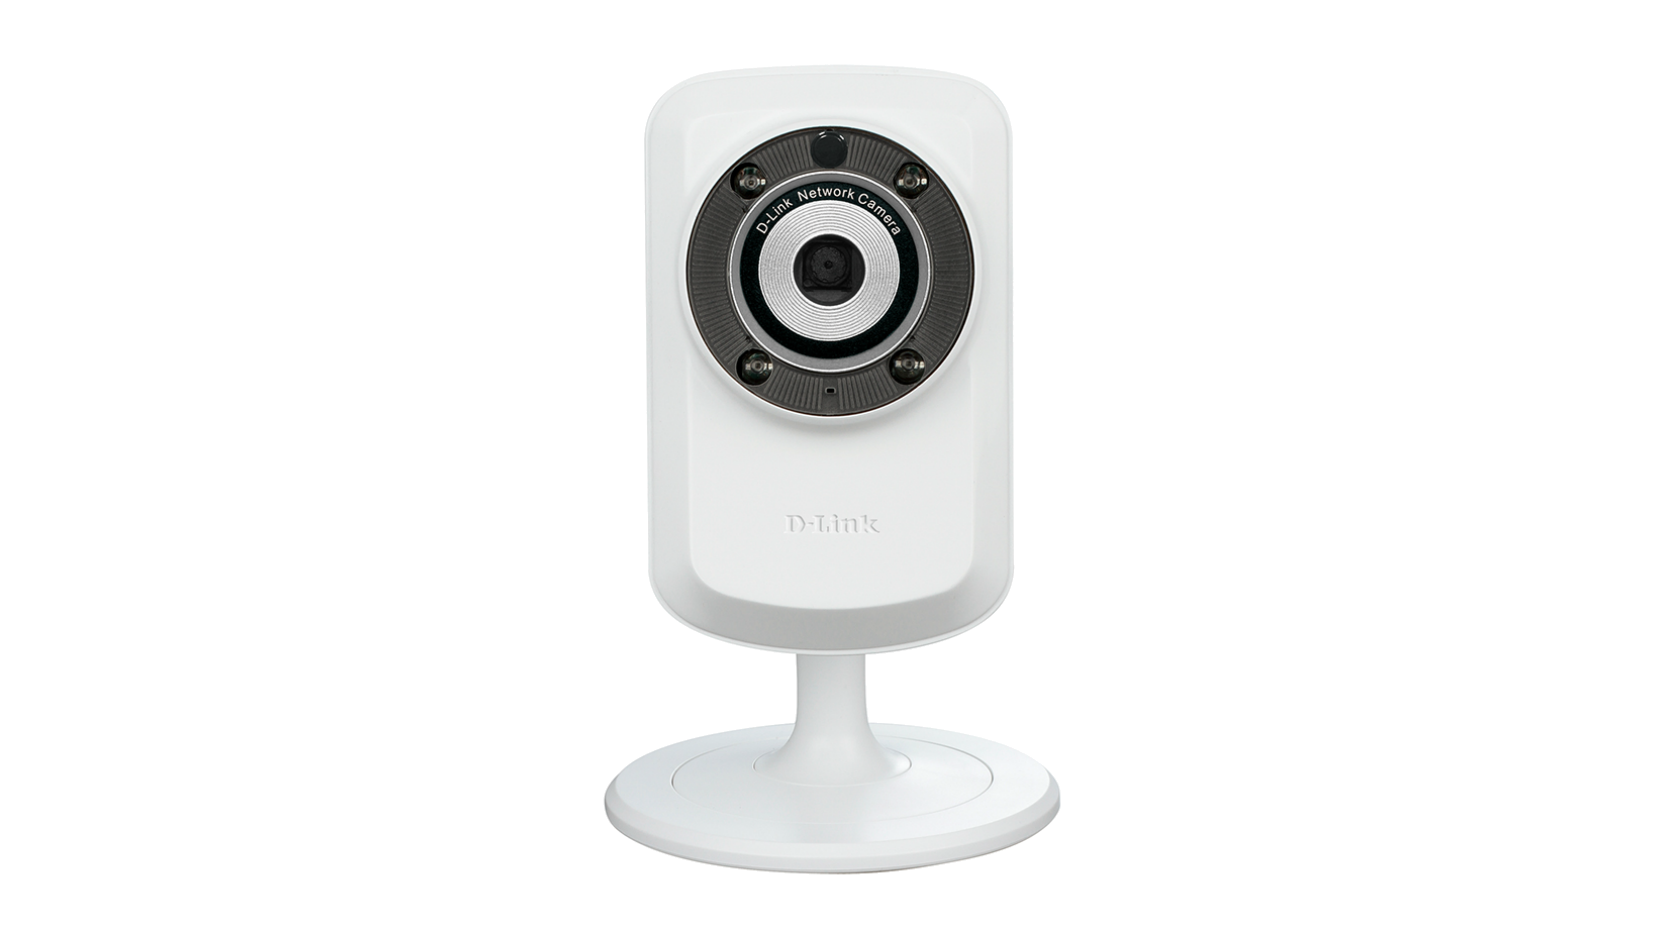 d link wireless ip camera review